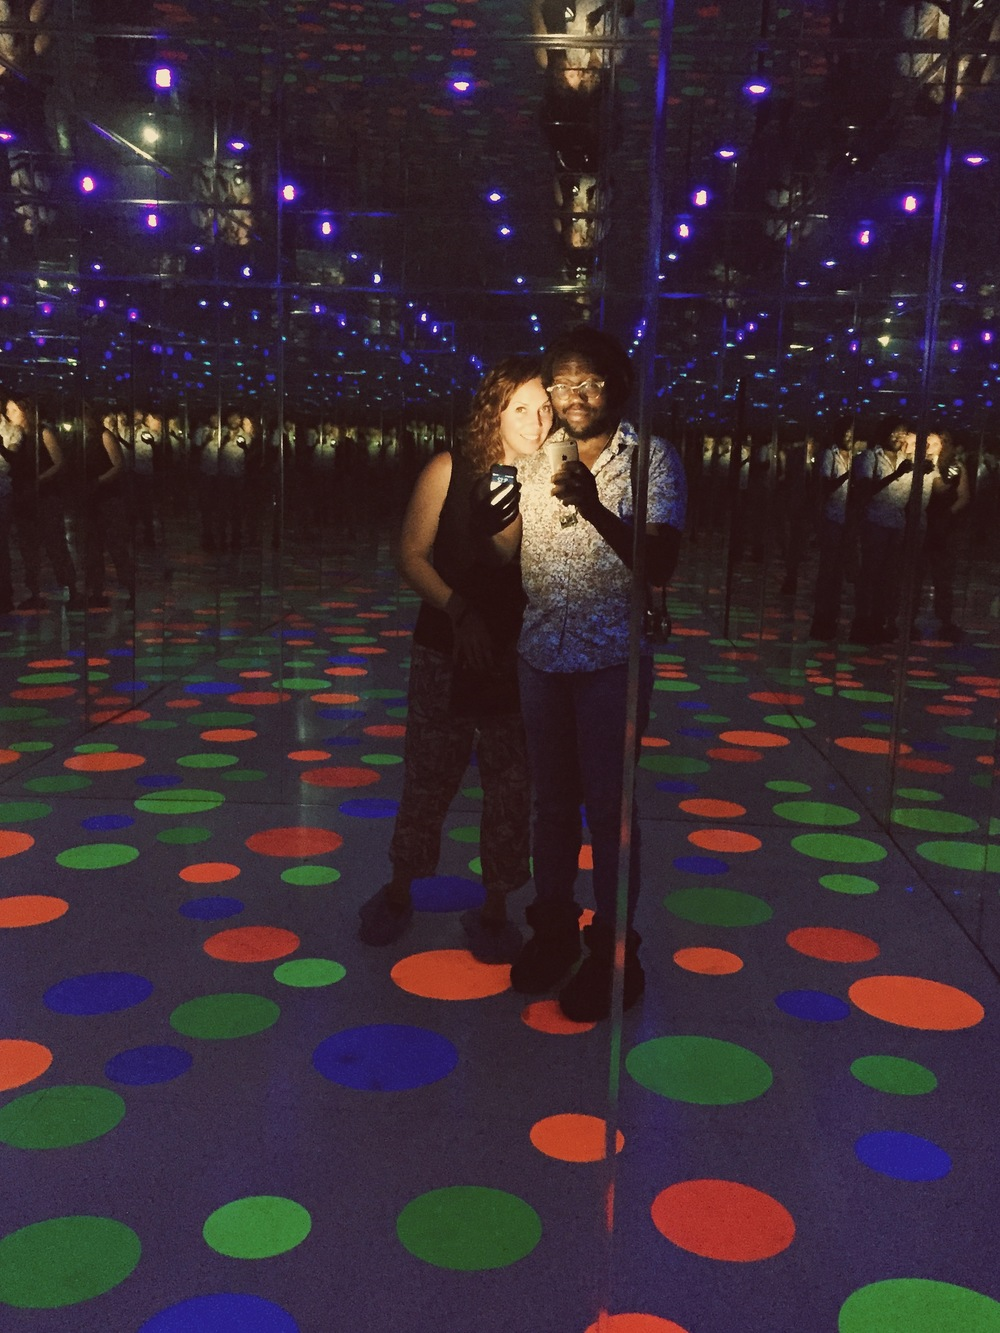 Yayoi Kusama's Infinity Dots Mirrored Room - this was my second favorite.  Isaac clearly knew what he was doing with his light sources.